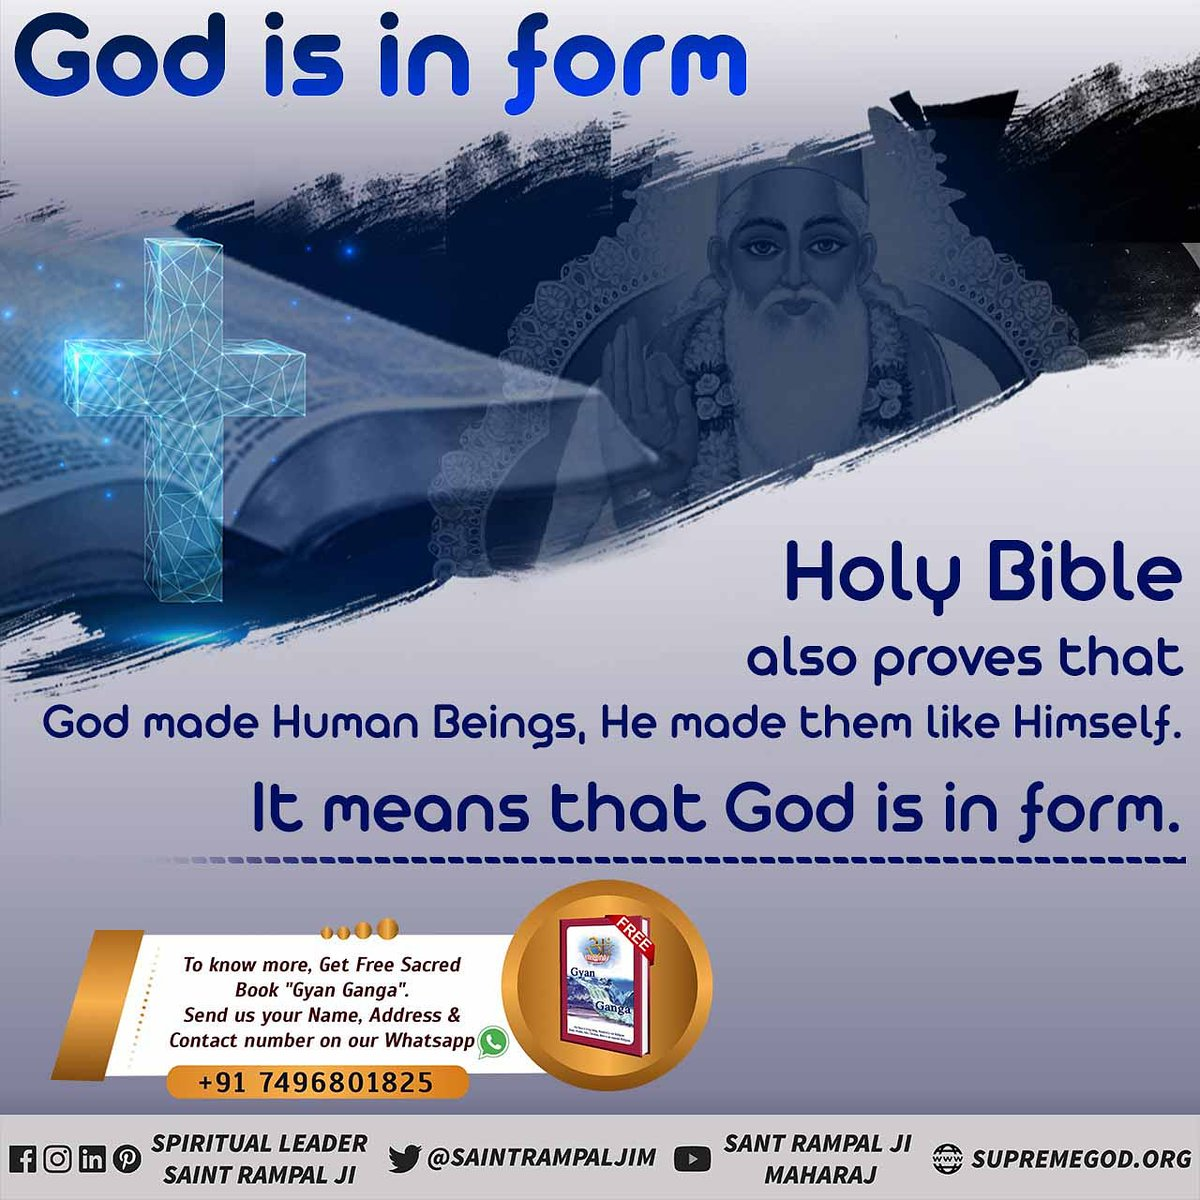 #TuesdayThoughts  #Allah_CanBe_Seen Holy Quran proves that Allah Kabir Saheb Ji is the Almighty God. He alone is immortal and worthy of being worshipped. #TuesdayMotivation   👉Last Prophet Sant Rampal ji